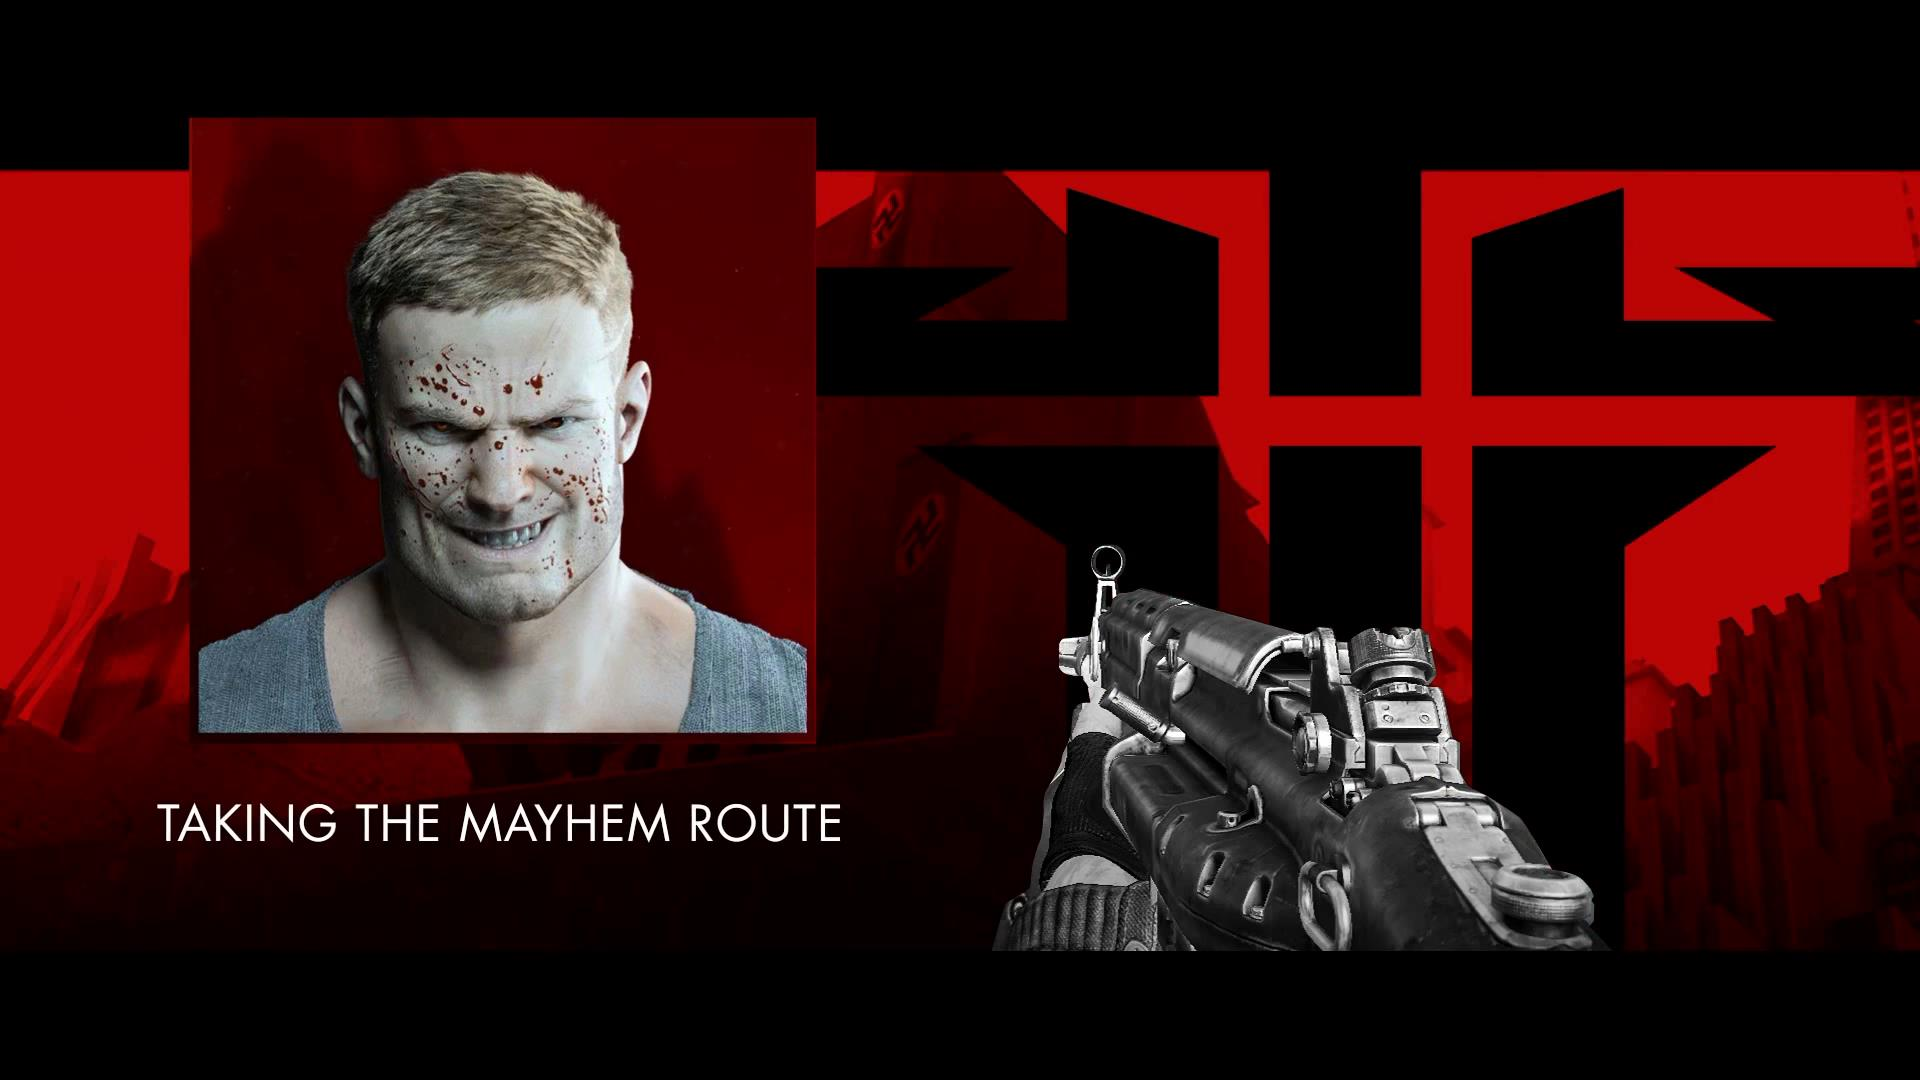 Wolfenstein The New Order Stealth vs. Mayhem